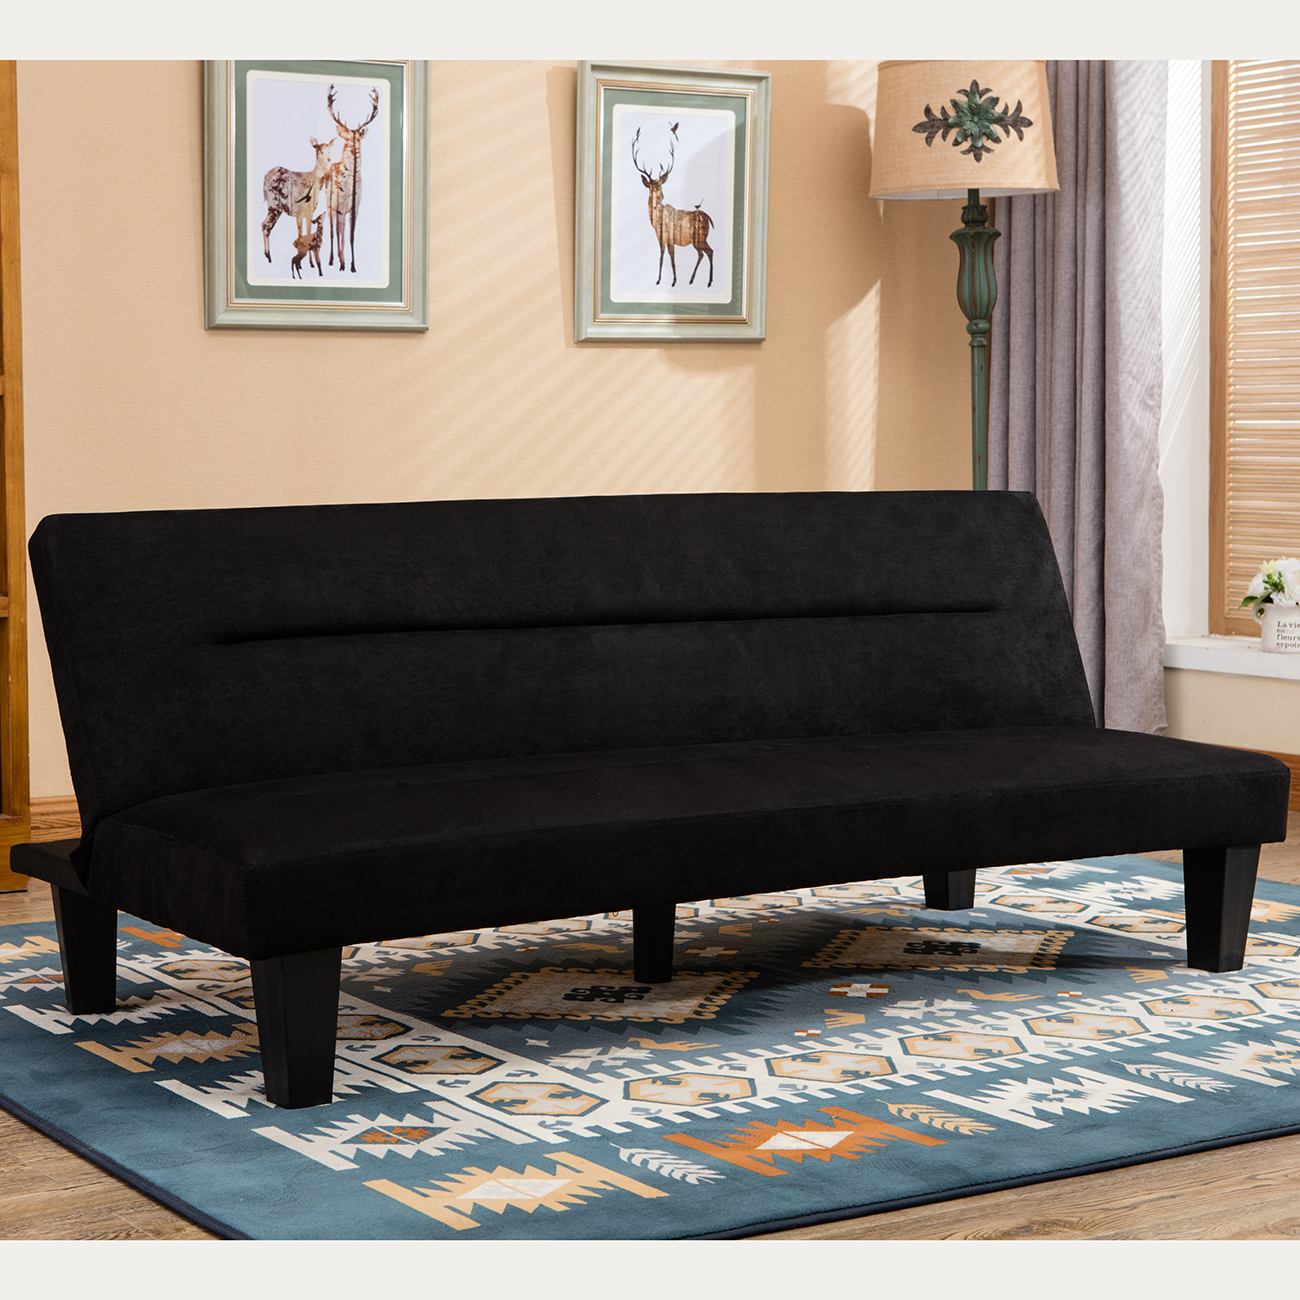 Belleze Premium Convertible Sofa Futon, Microfiber Couch Bed W/ Legs  Multifunctional Adjustable  Black